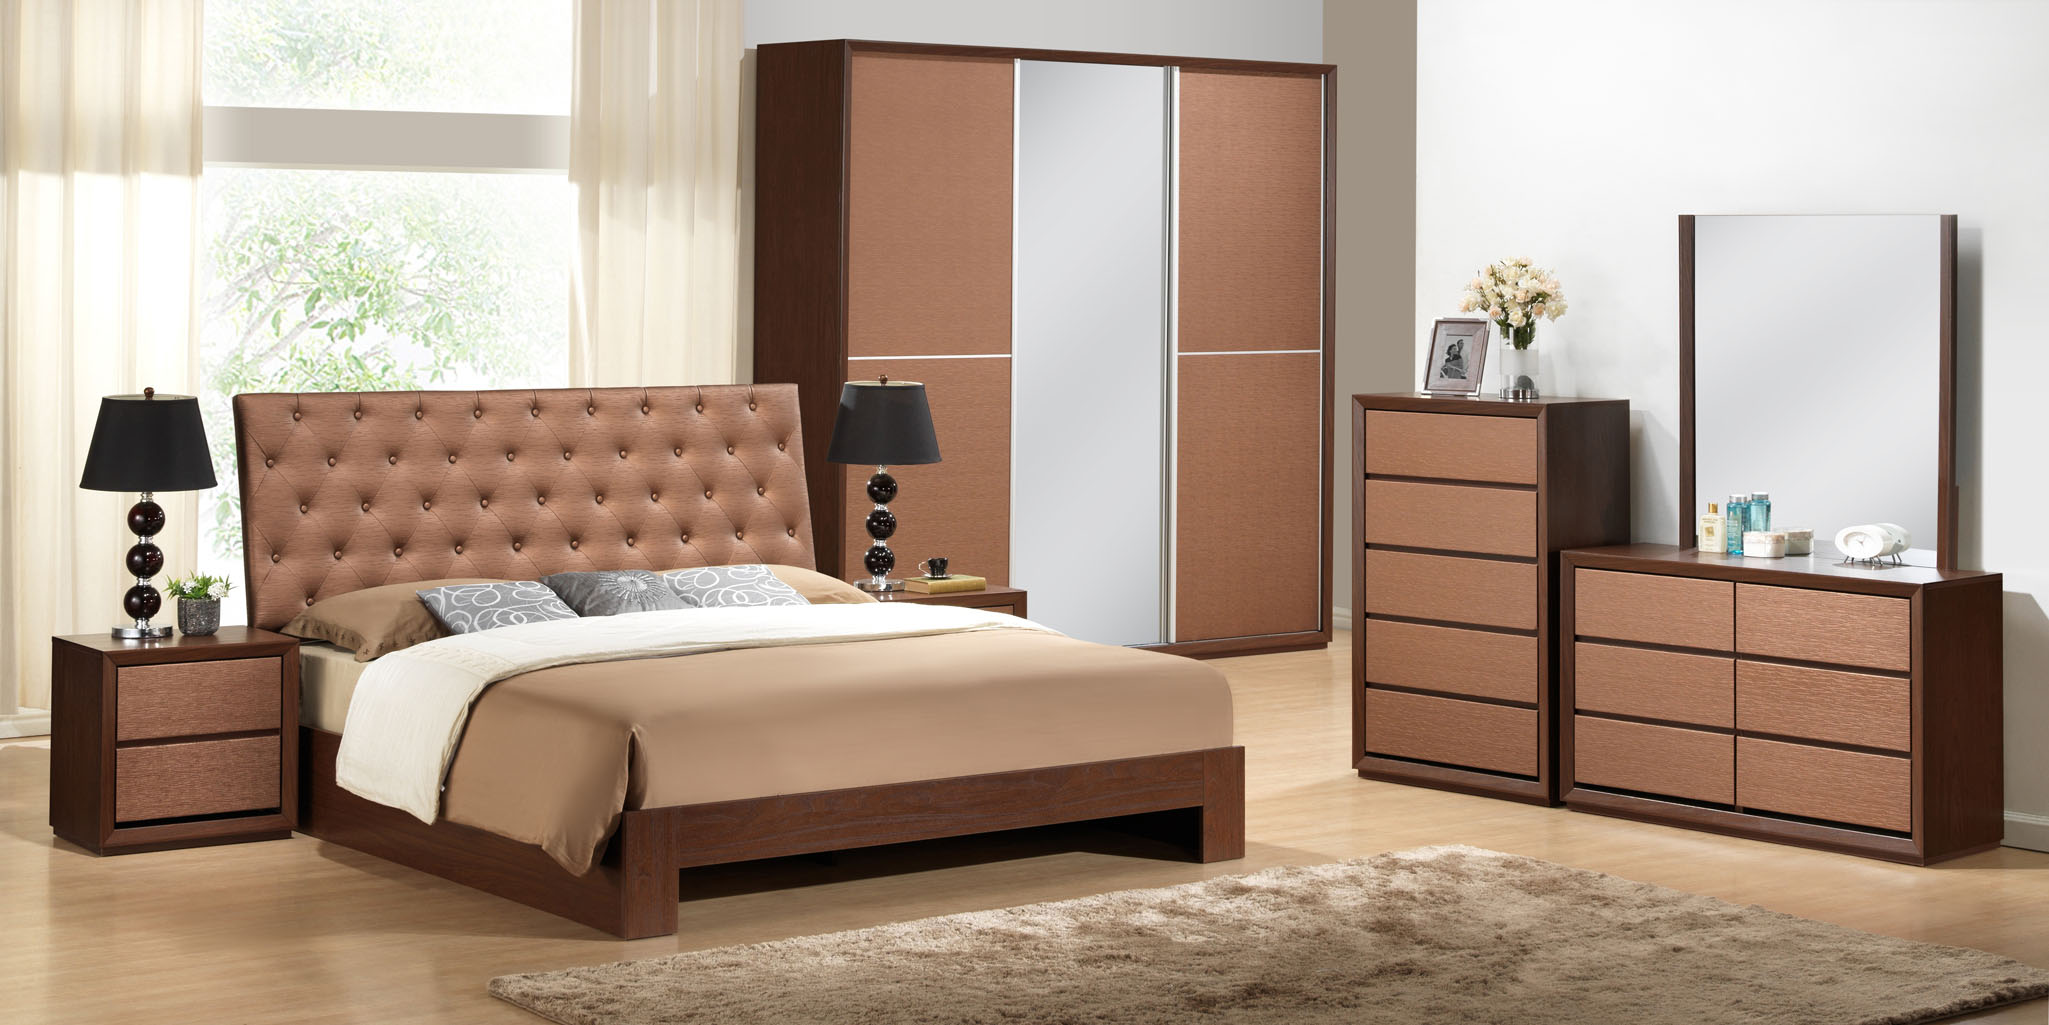 Quincy bedroom set fair production sdn bhd for Bedding room furniture